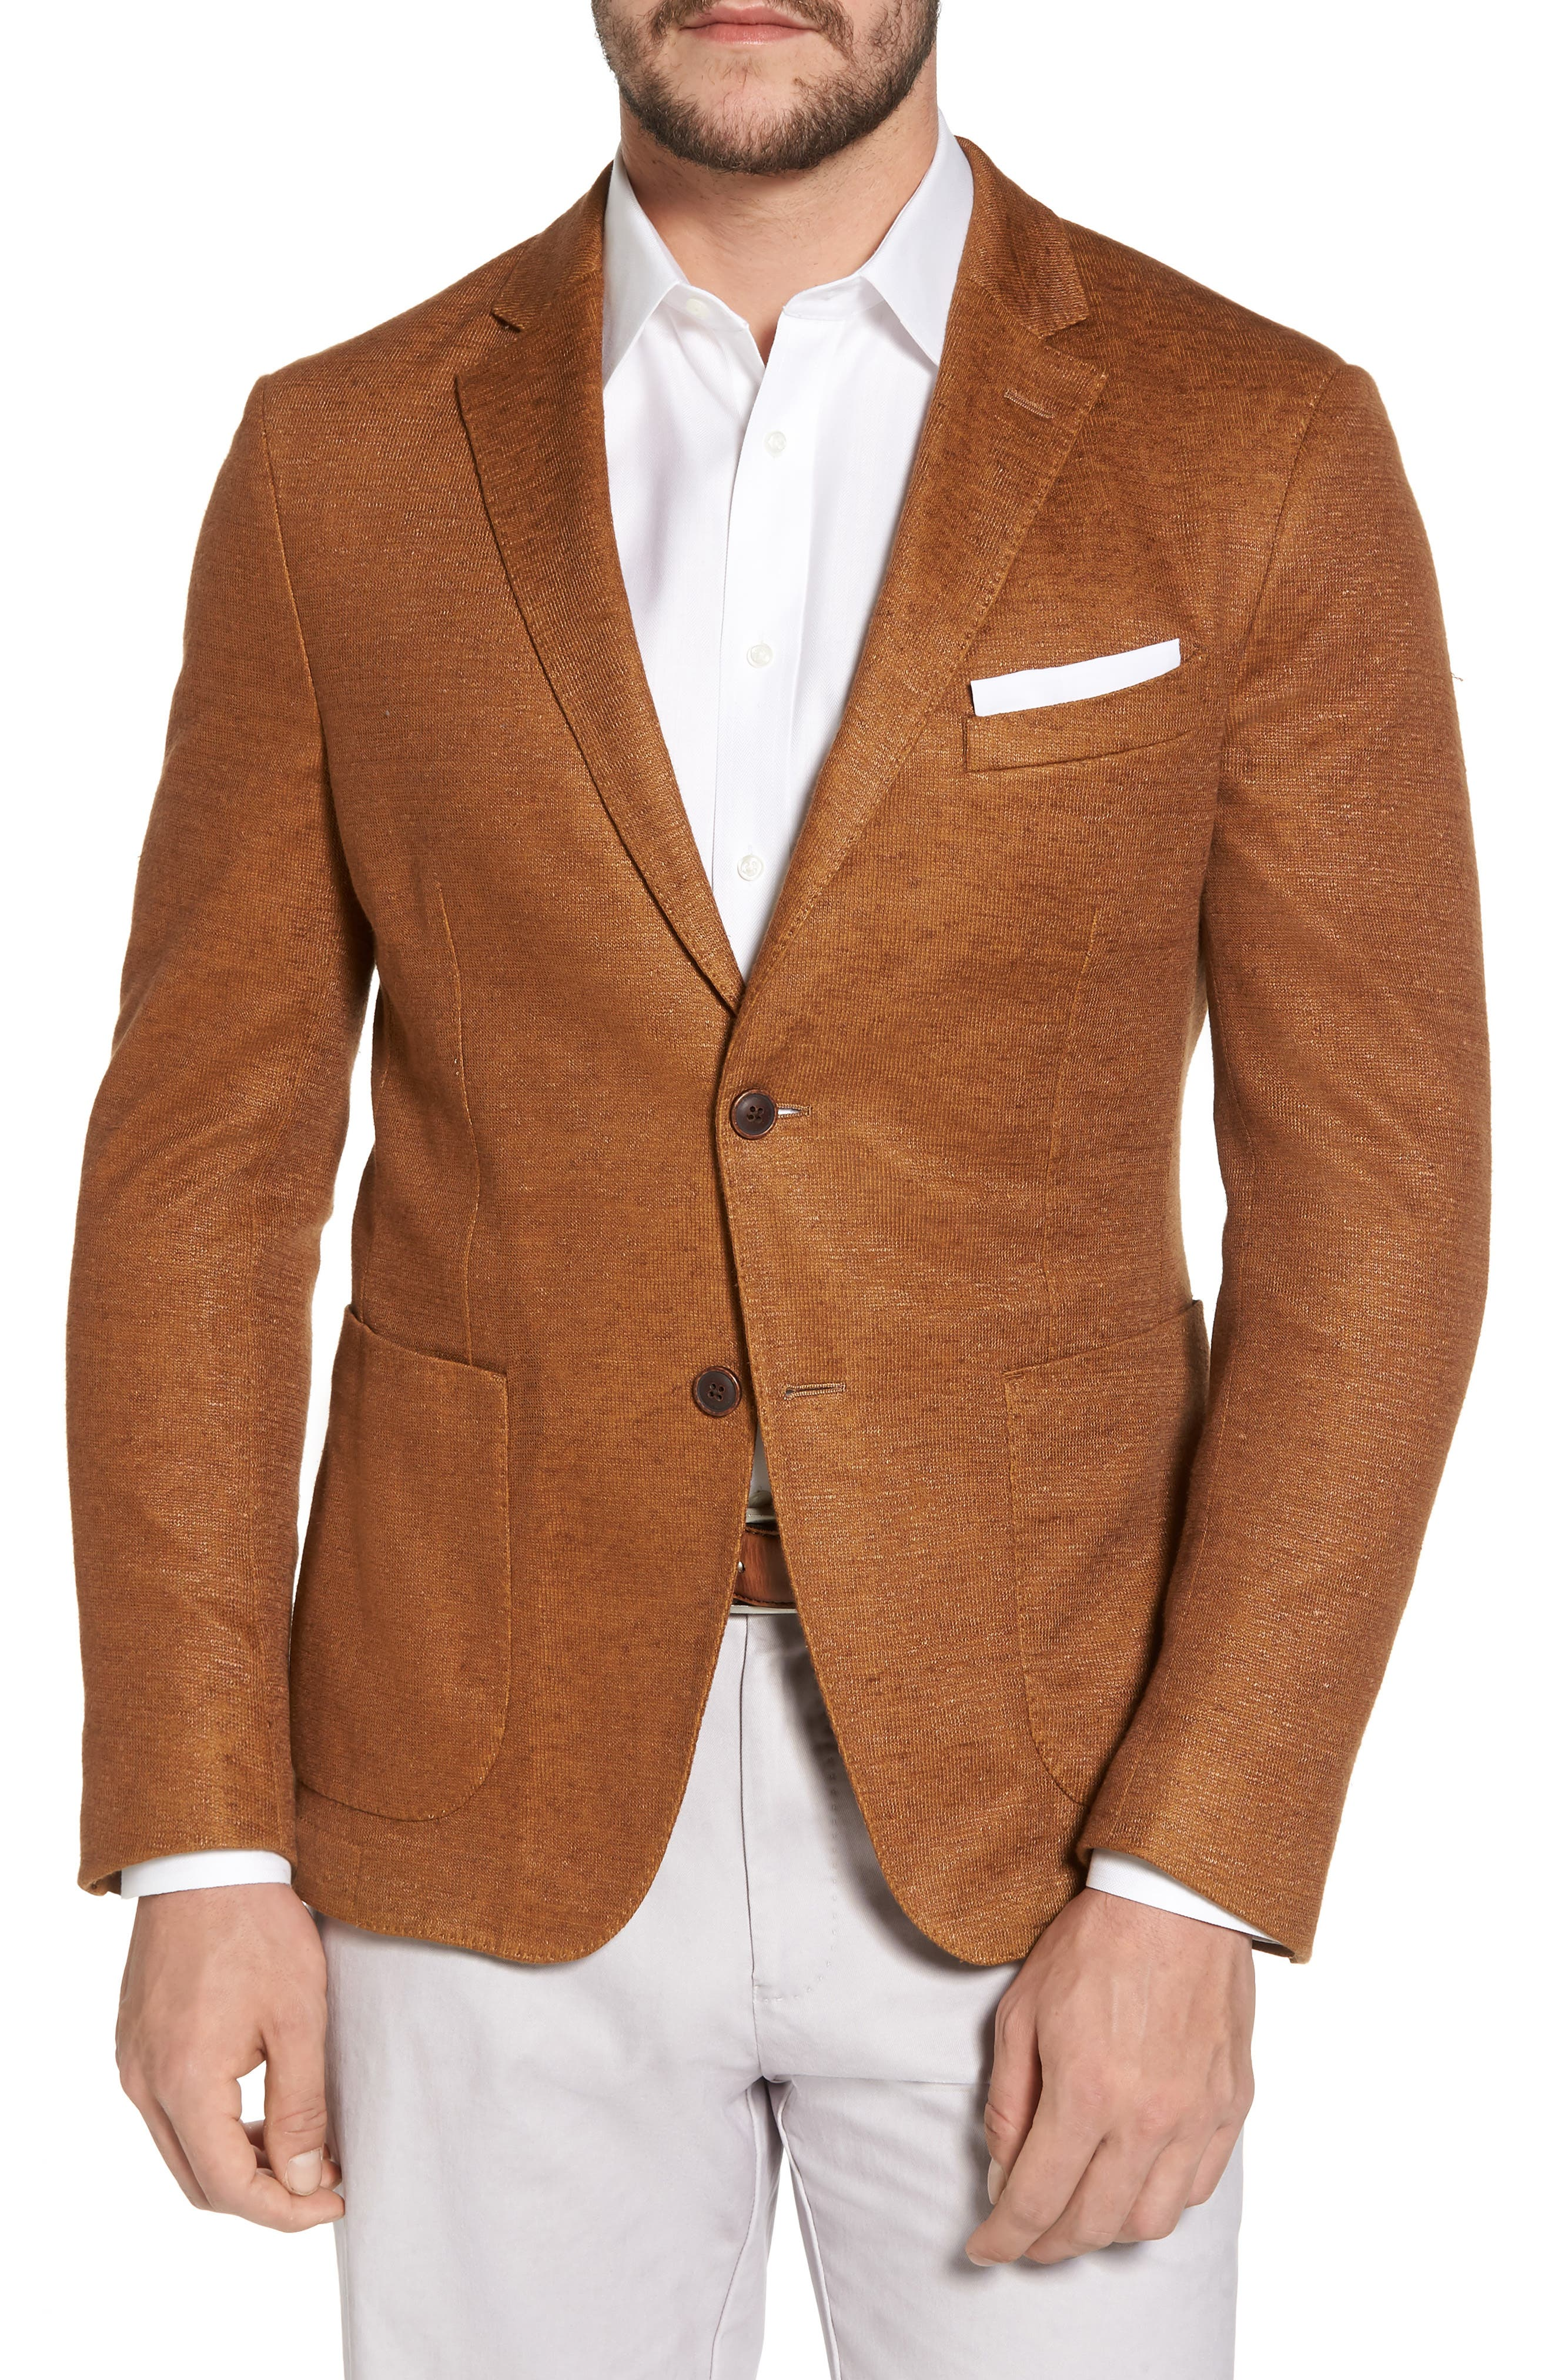 Trim Fit Heathered Jersey Blazer,                             Main thumbnail 1, color,                             801